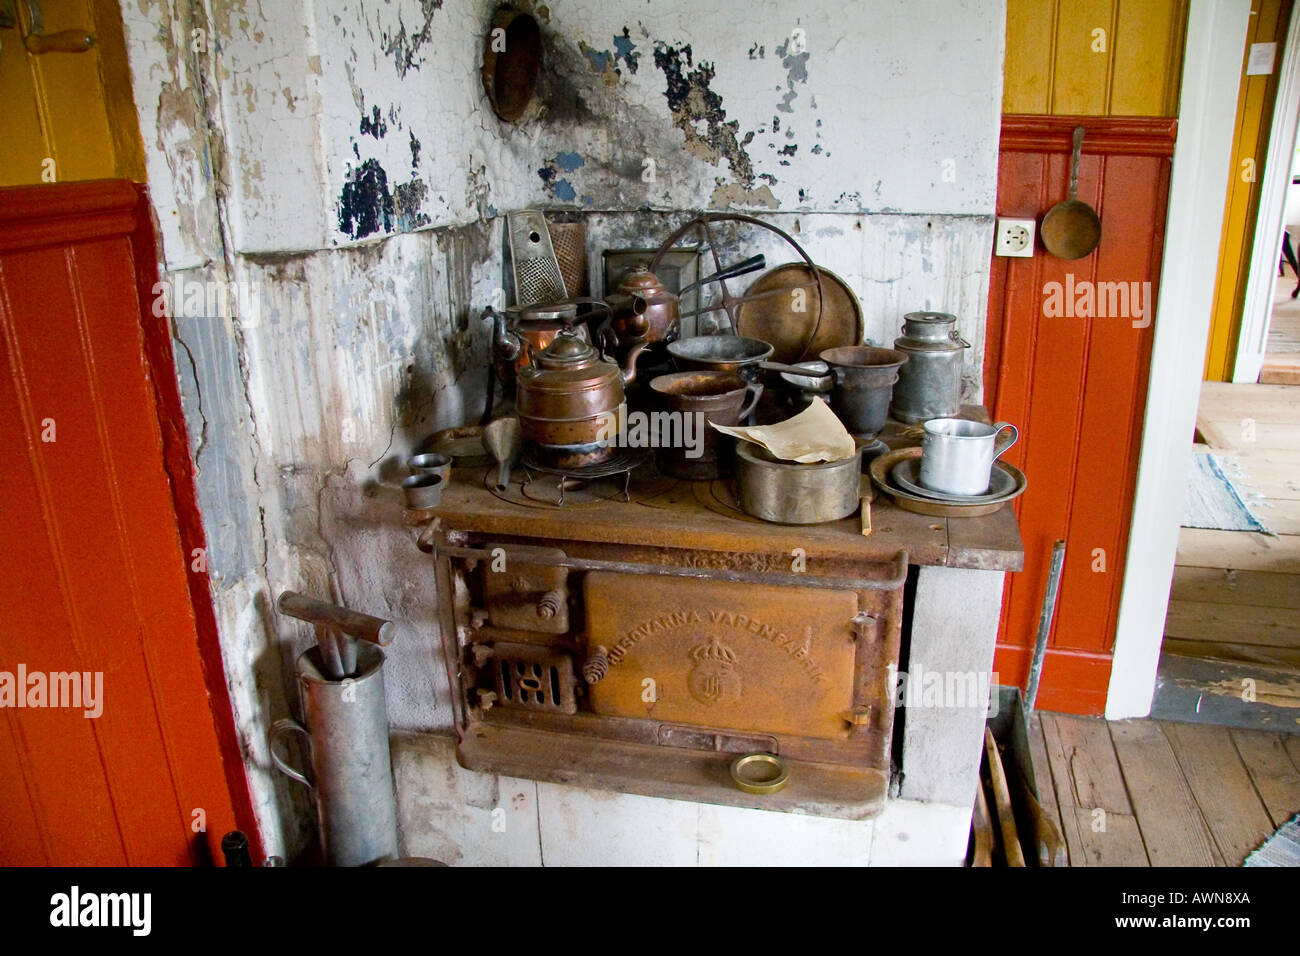 Old swedesh stove with households - Stock Image